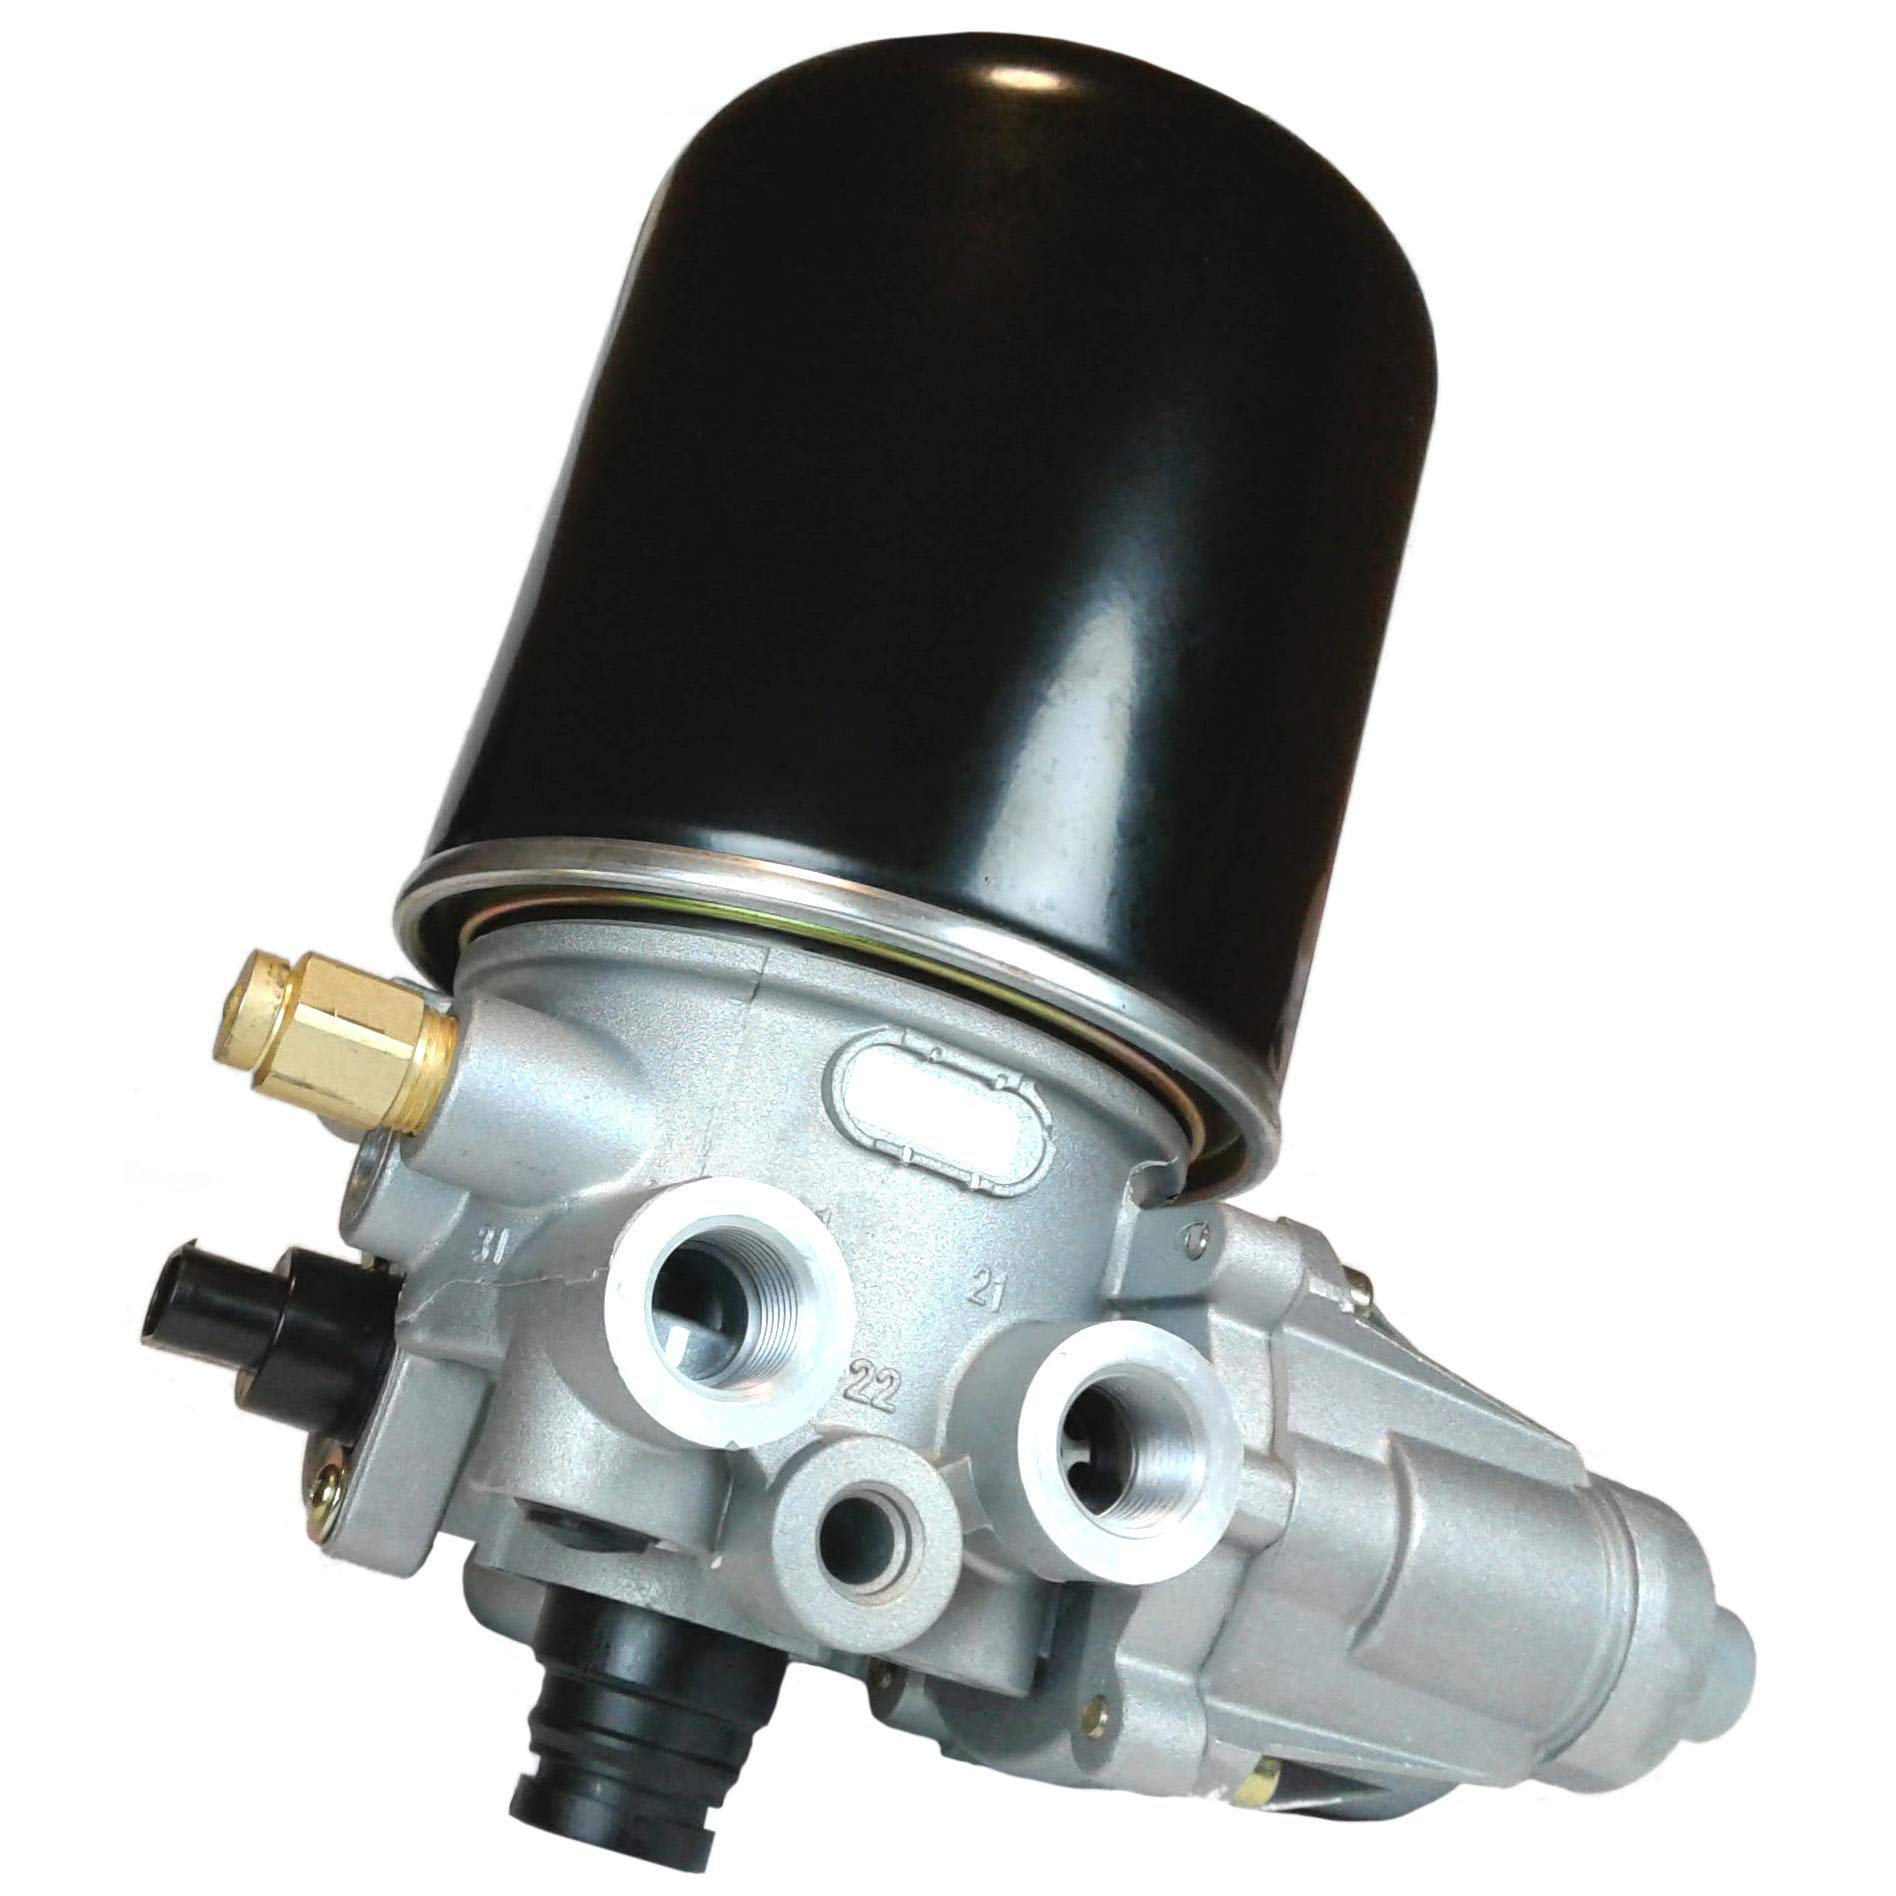 Brake Air Dryer Assembly with In-Line Check Valve and Pigtail for Heavy Duty Big Rigs